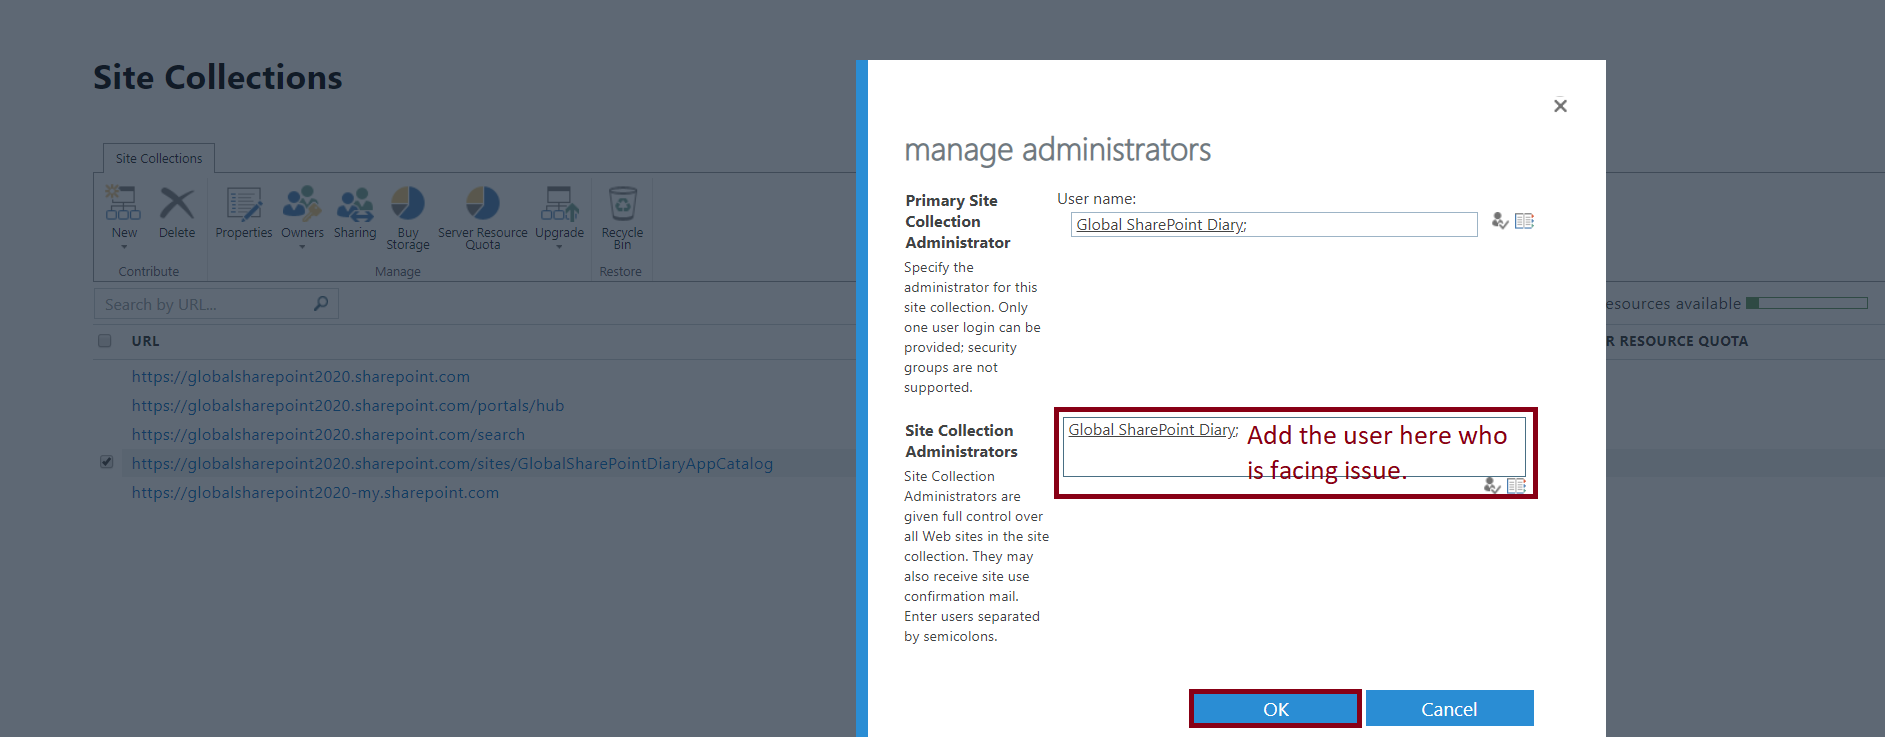 Manage Administrator in the SharePoint Online Classic Site Collection - Add Site Collection Administrator